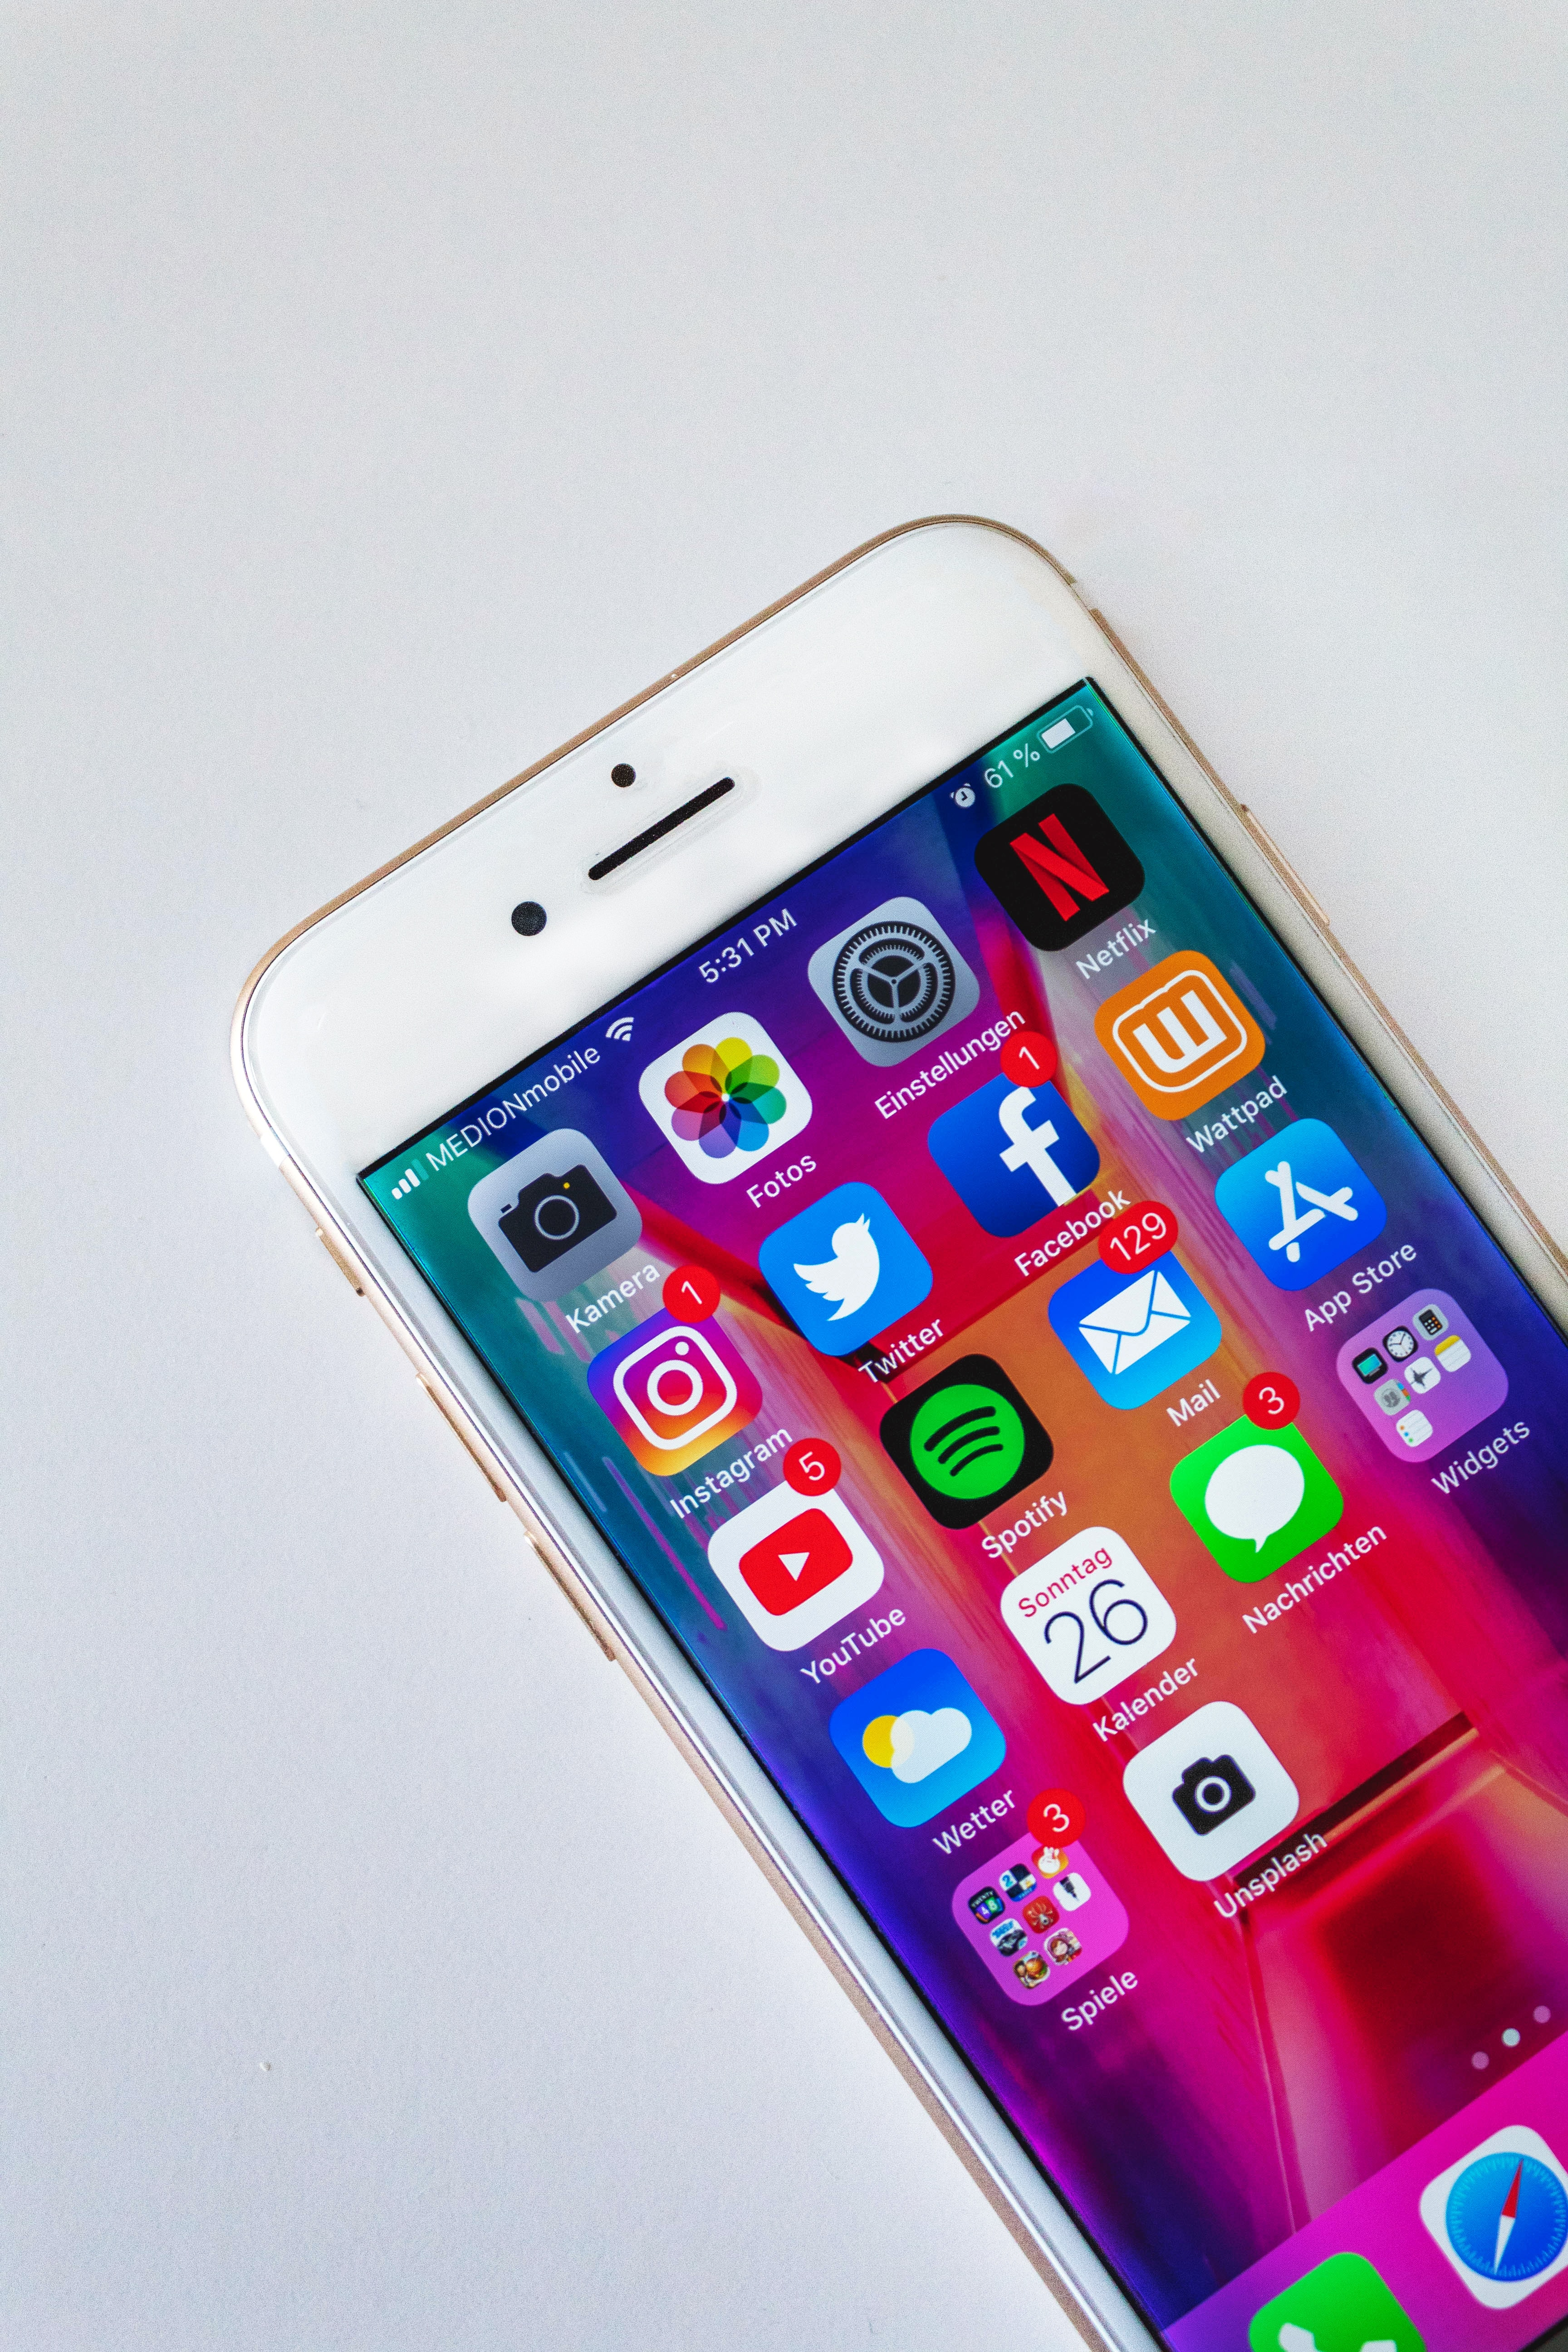 A smartphone, increasingly used to access social media and other online resources